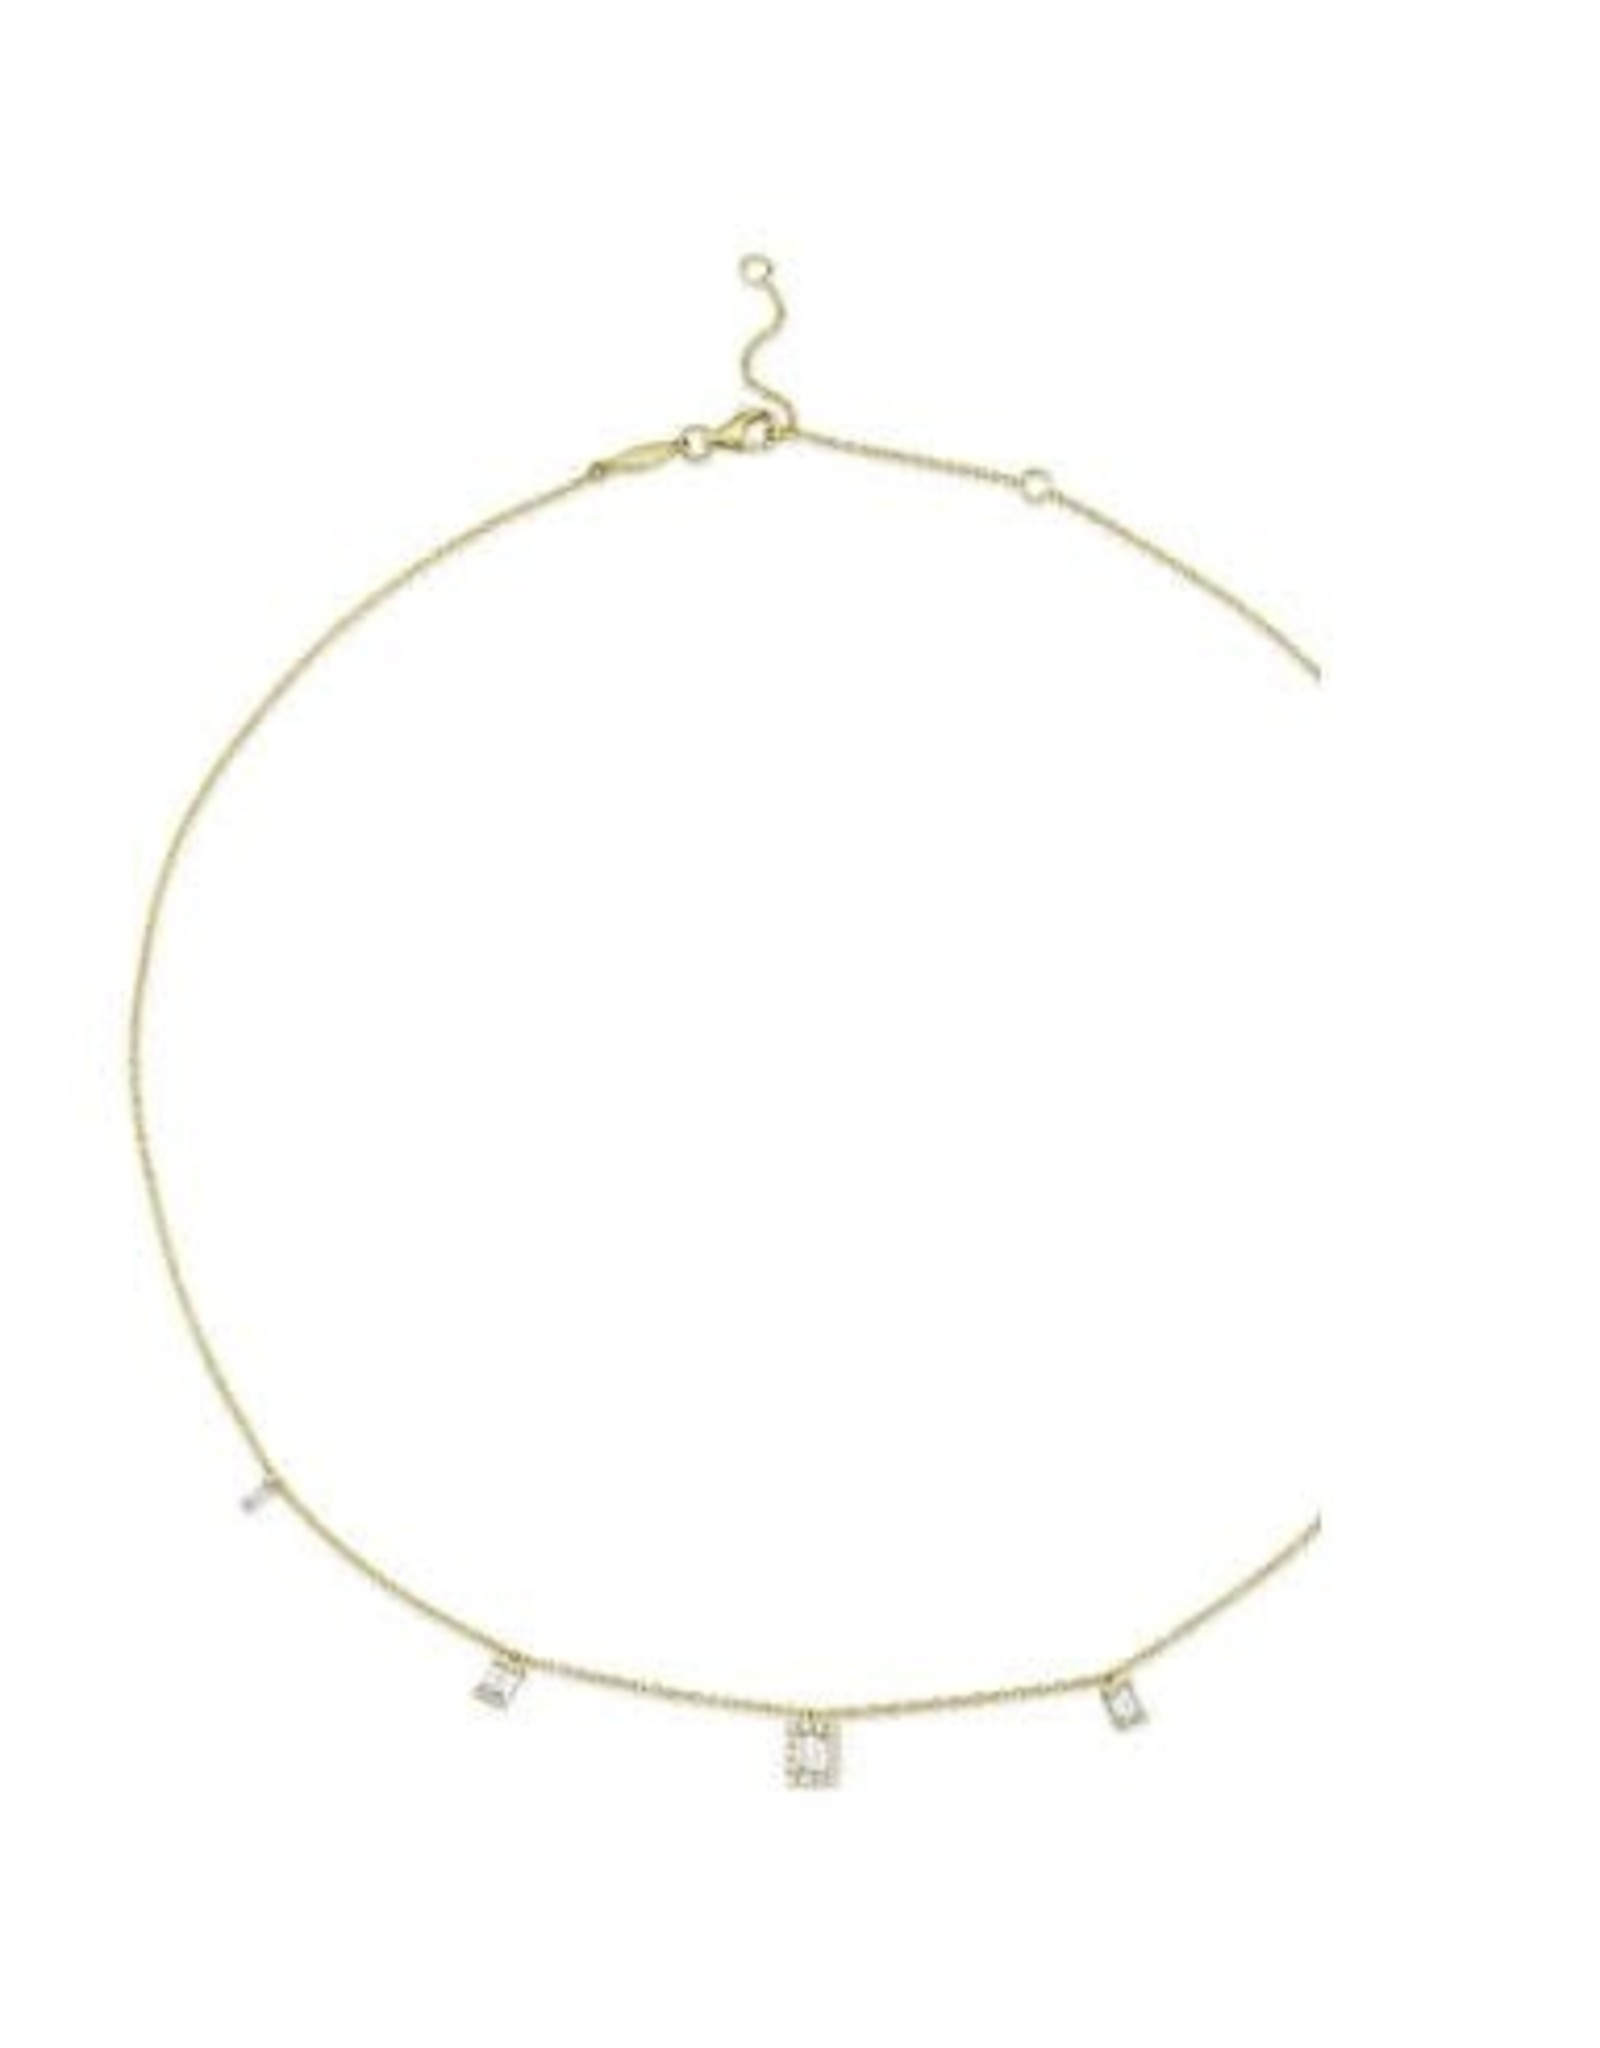 14K Yellow Gold Diamond Baguette Necklace,  D: 0.46ct